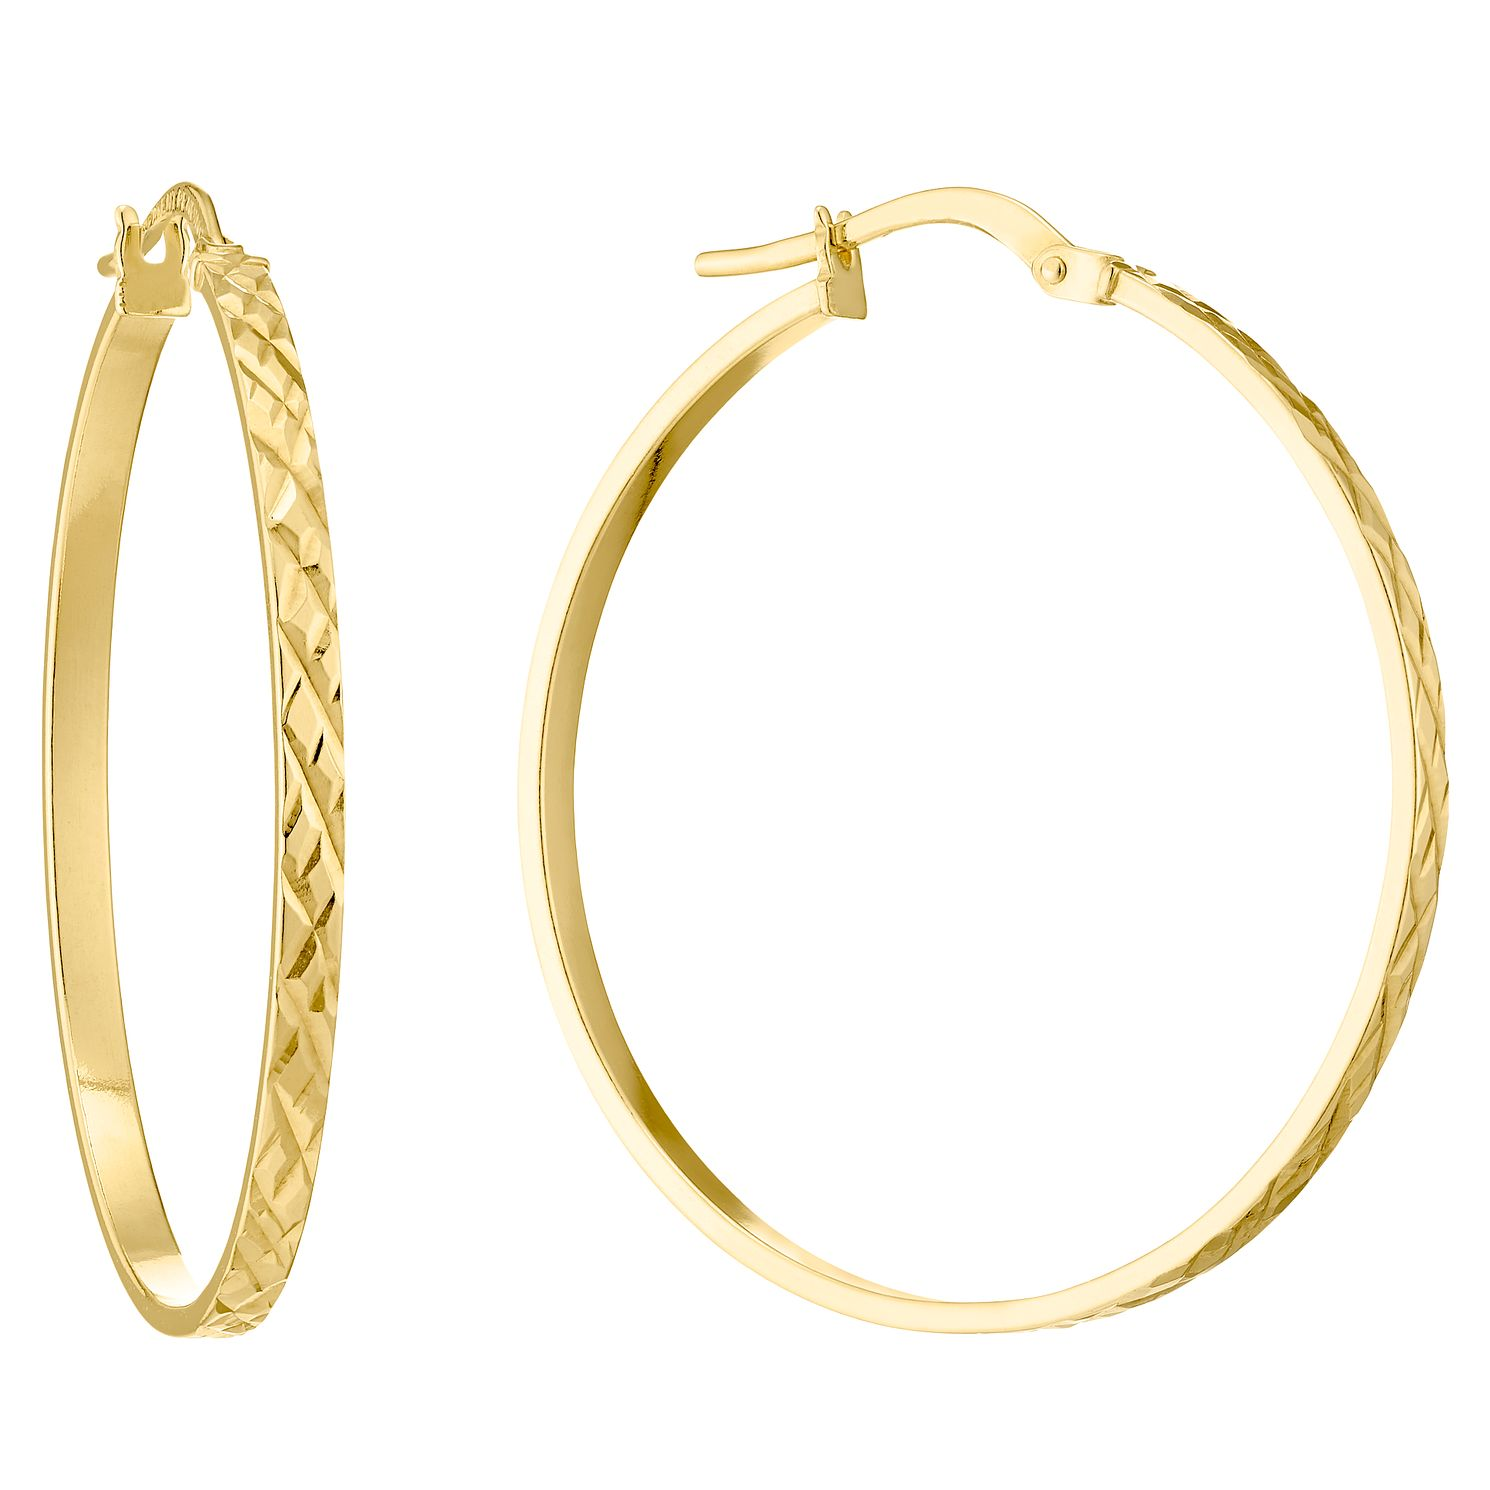 9ct Yellow Gold Diamond Cut 27mm Hoop Earrings - Product number 4506405